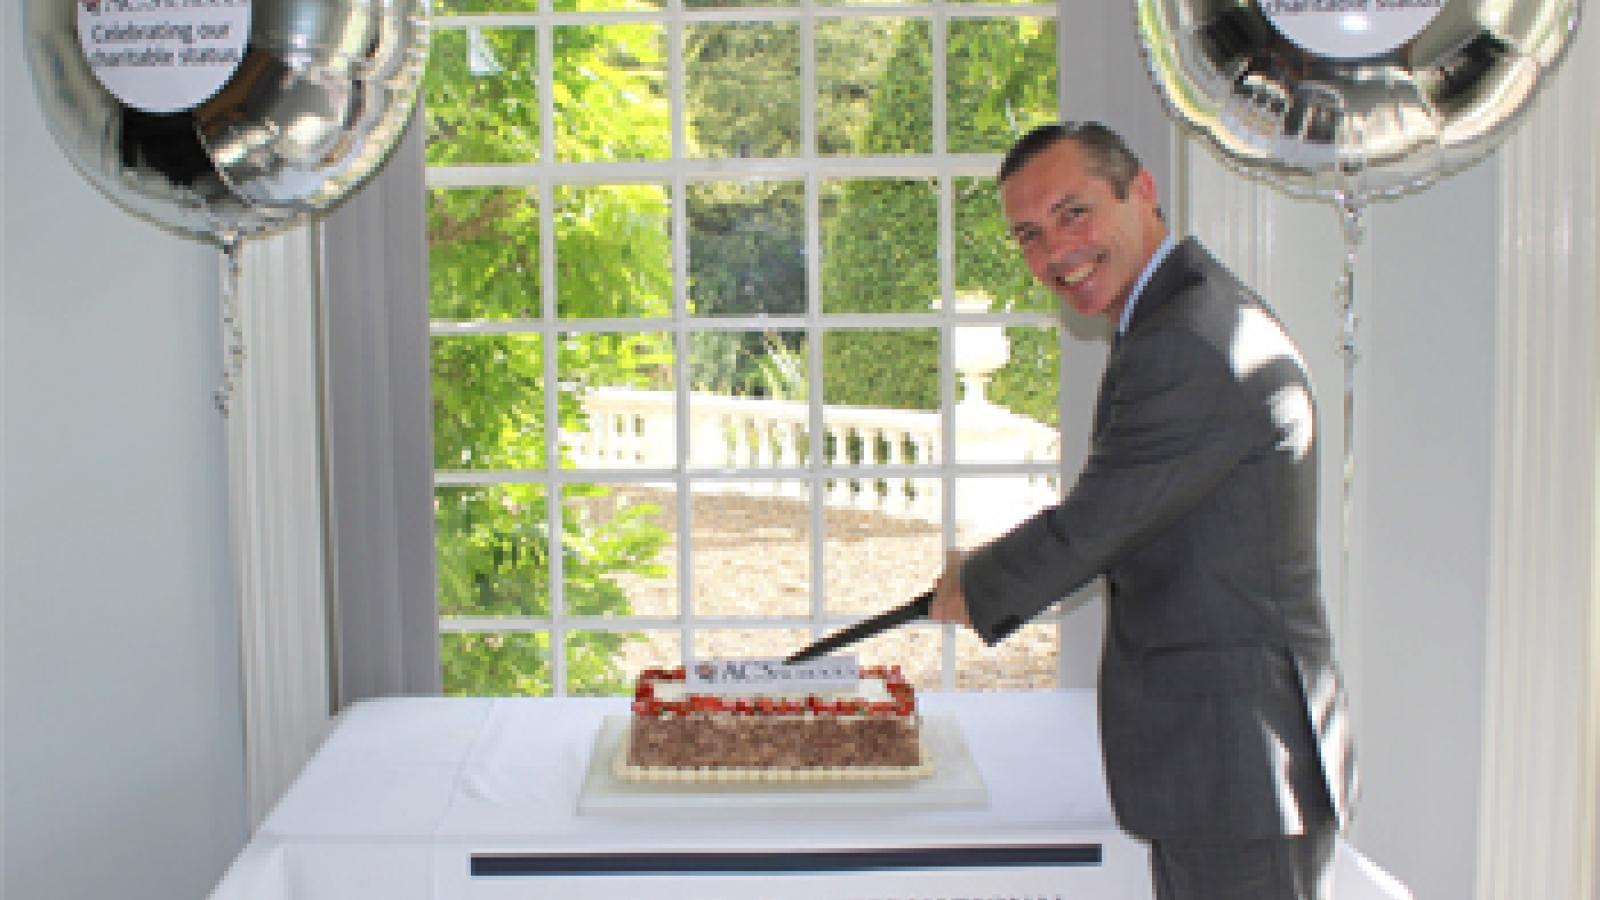 ACS International Schools CEO, Tim Cagney, cutting the cake during celebrations